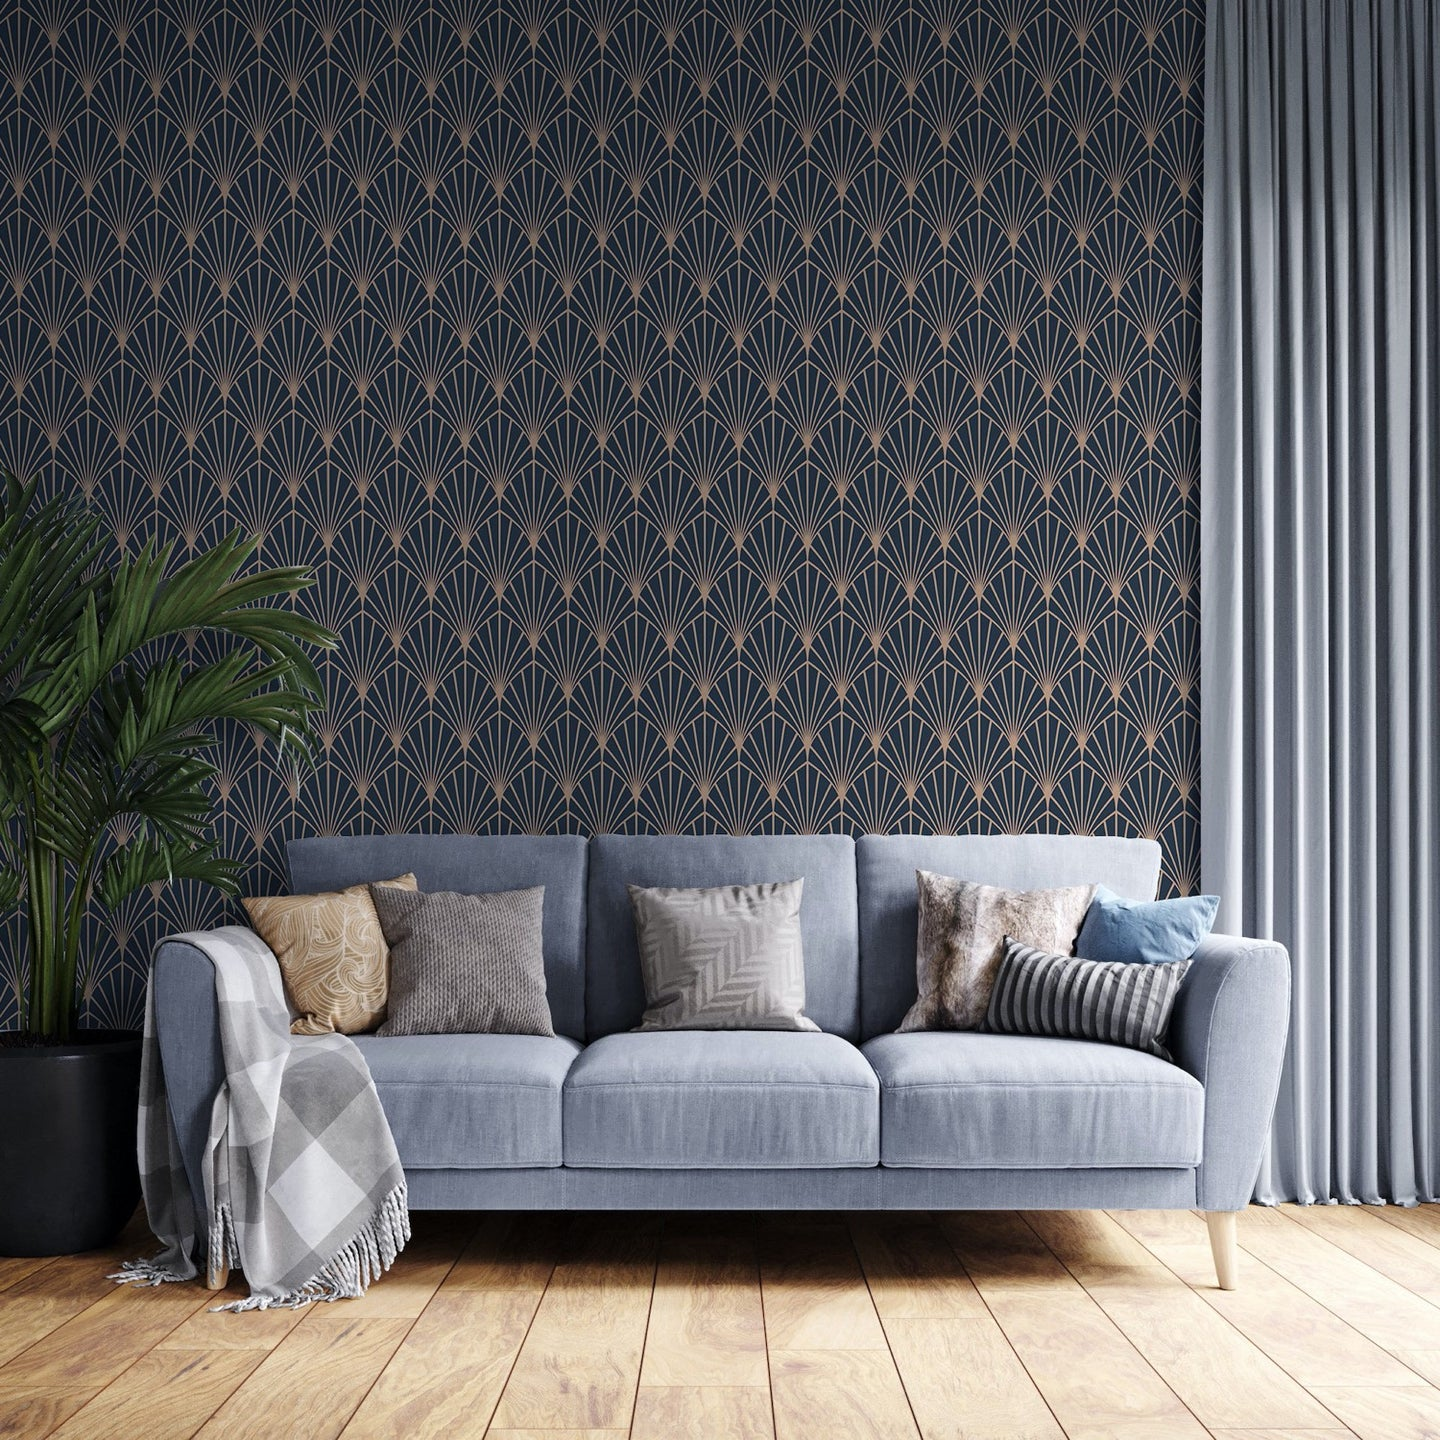 Dark Art Deco Peel And Stick Wallpaper - The Wallberry